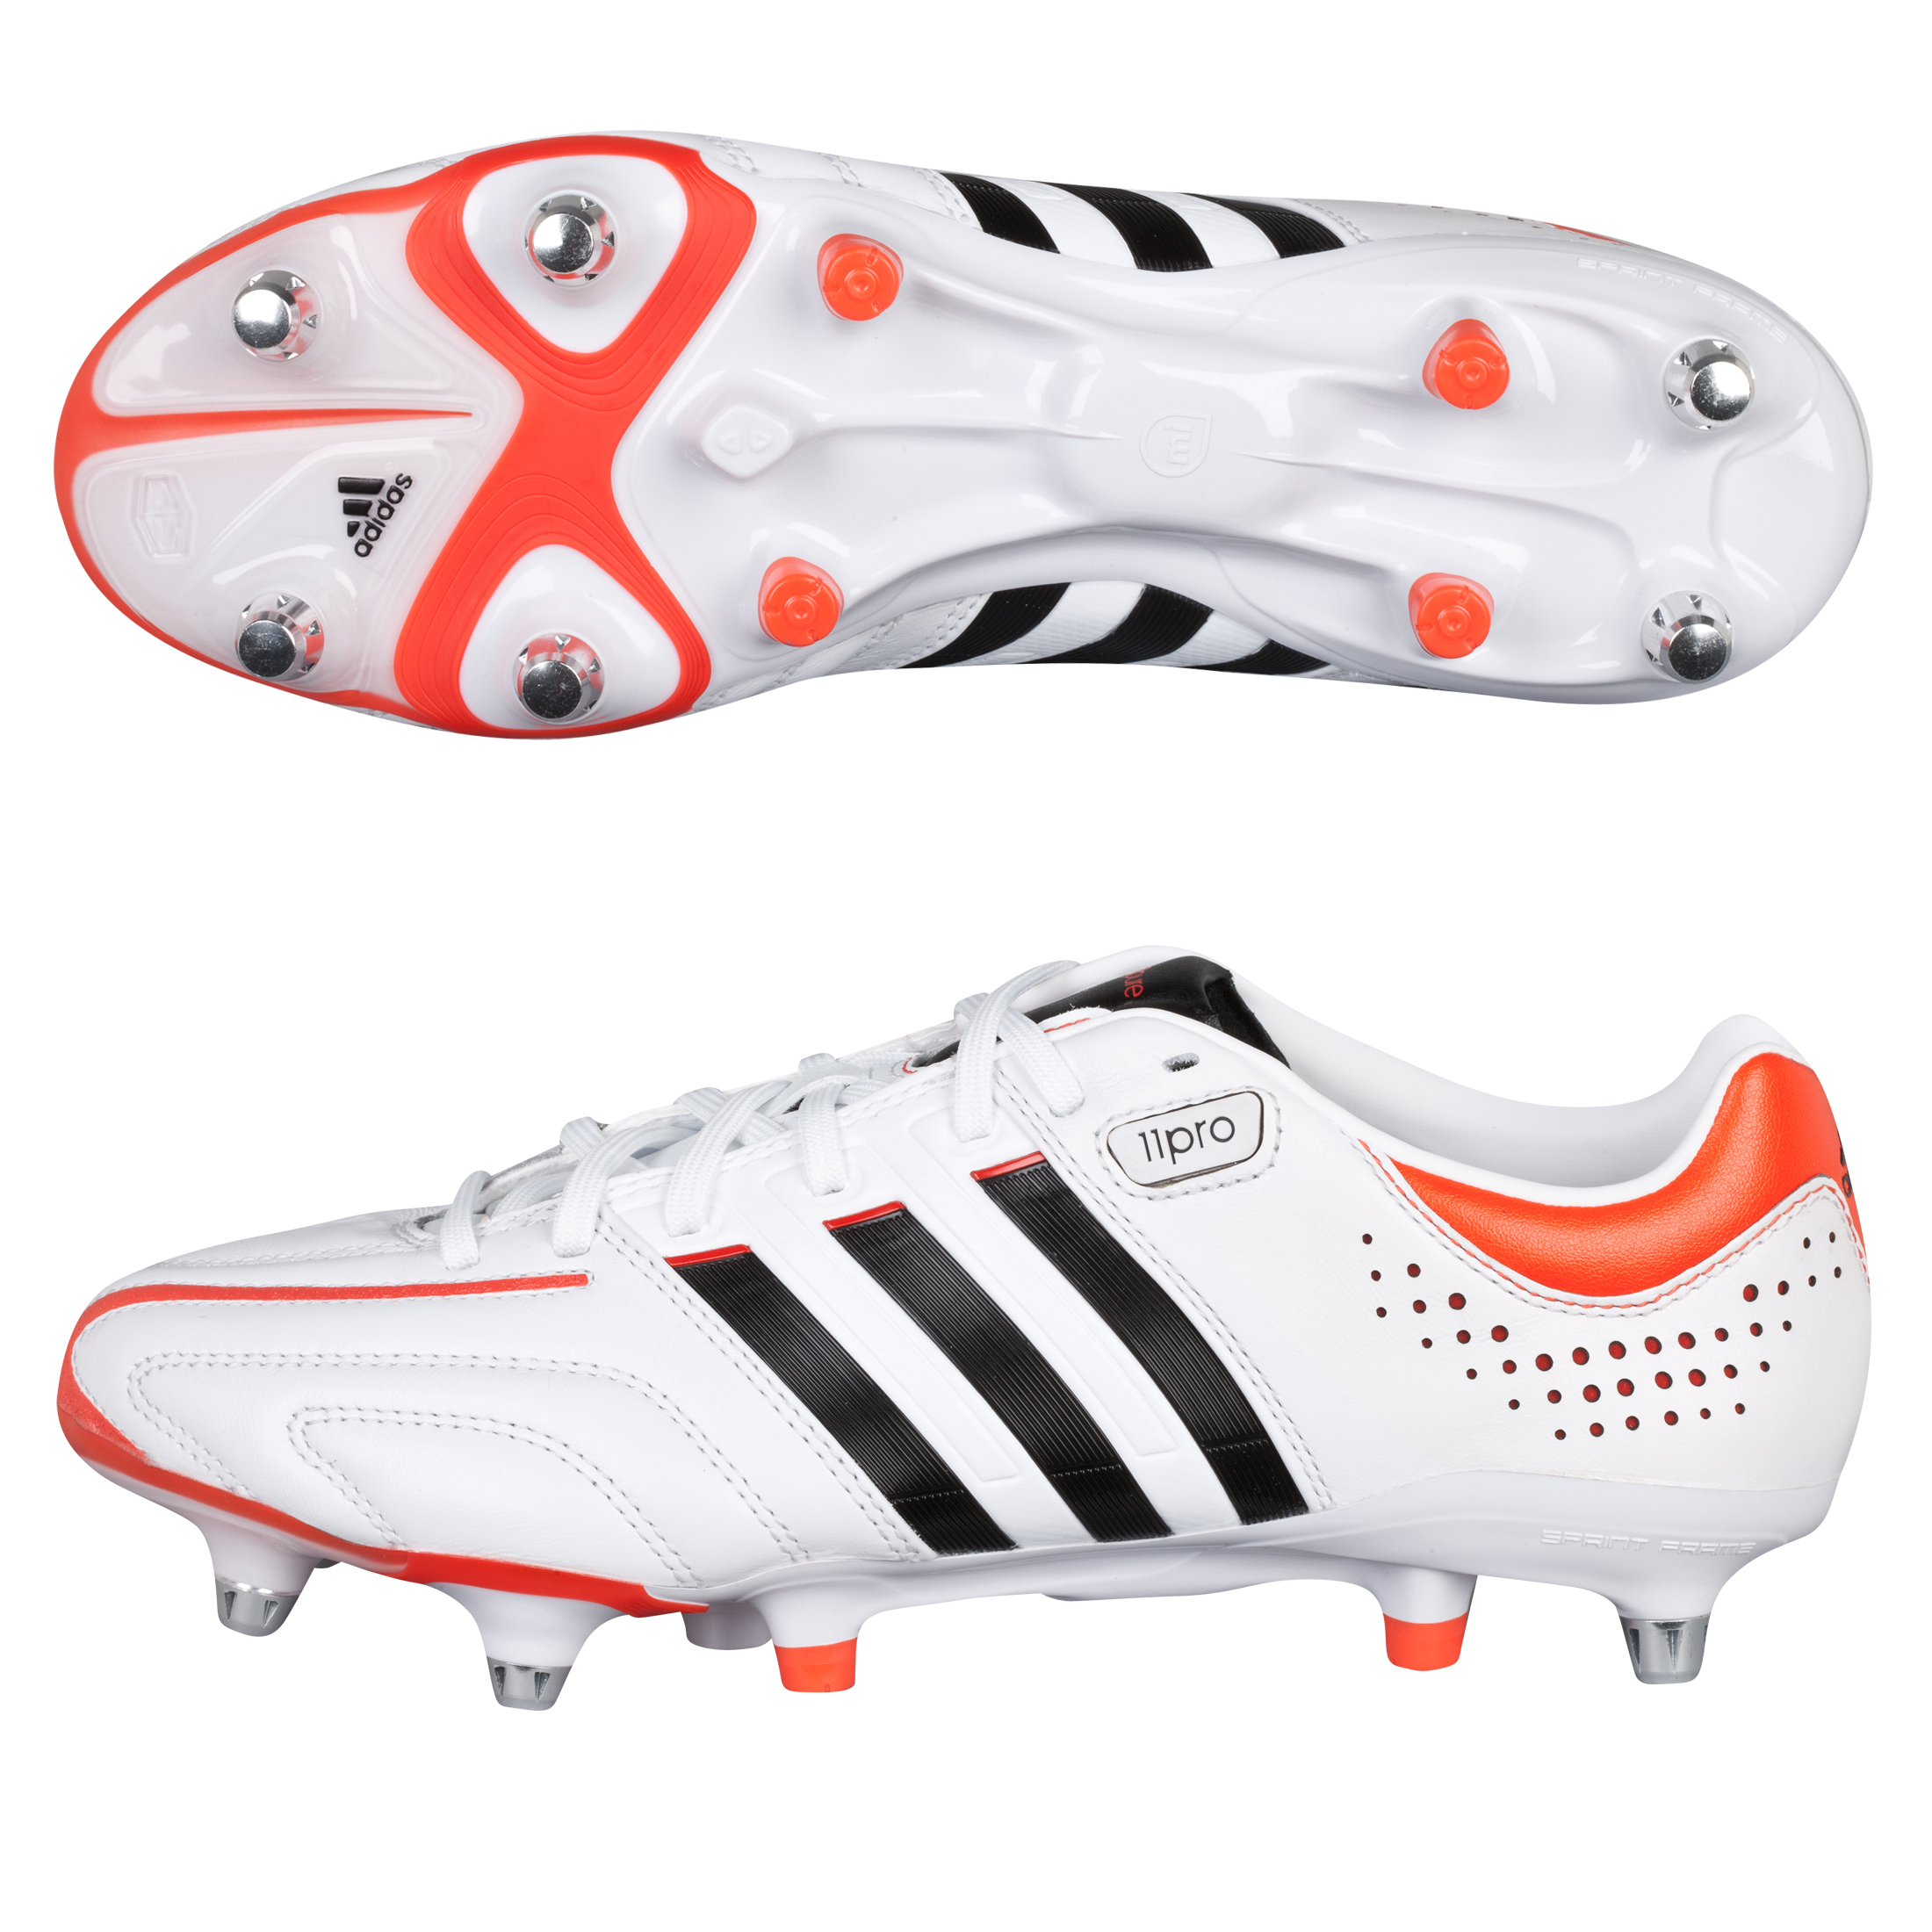 adidas adipure 11Pro XTRX Soft Ground Football Boots - Running White/Black 1/High Energy S12